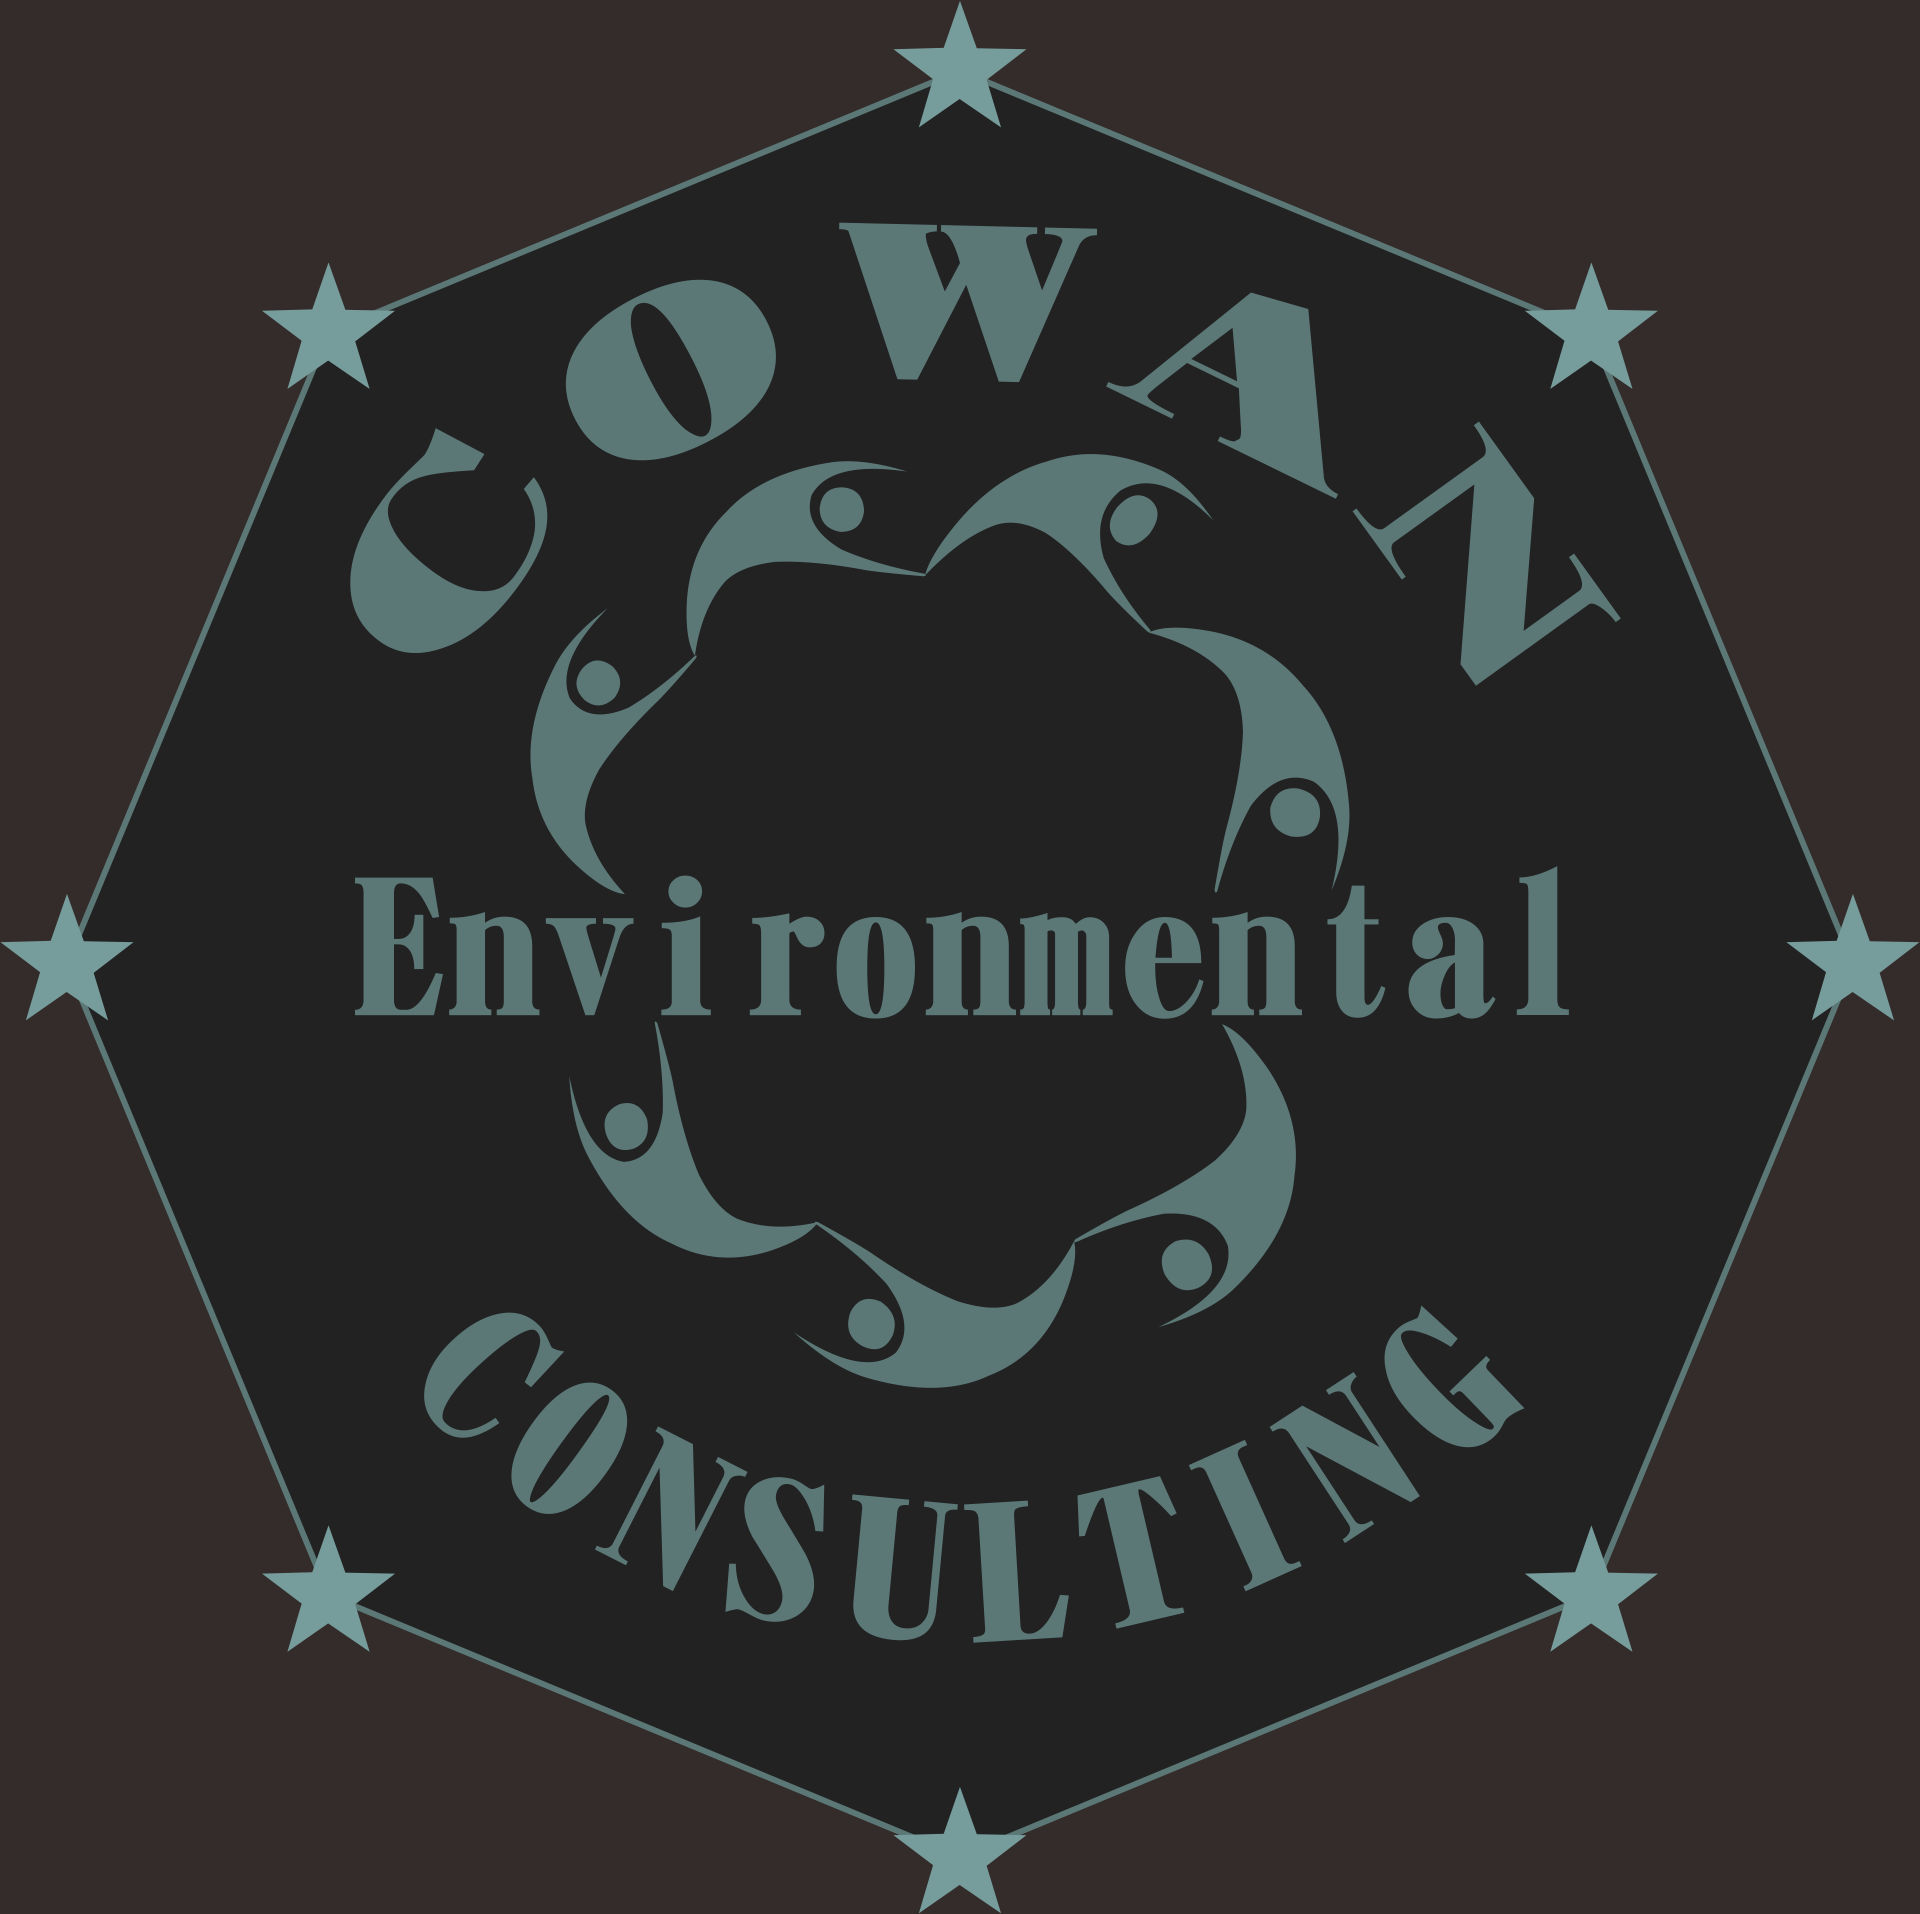 Logo Design by Teguh Hanuraga - Entry No. 20 in the Logo Design Contest Fun Logo Design for Cowan Environmental Consulting.